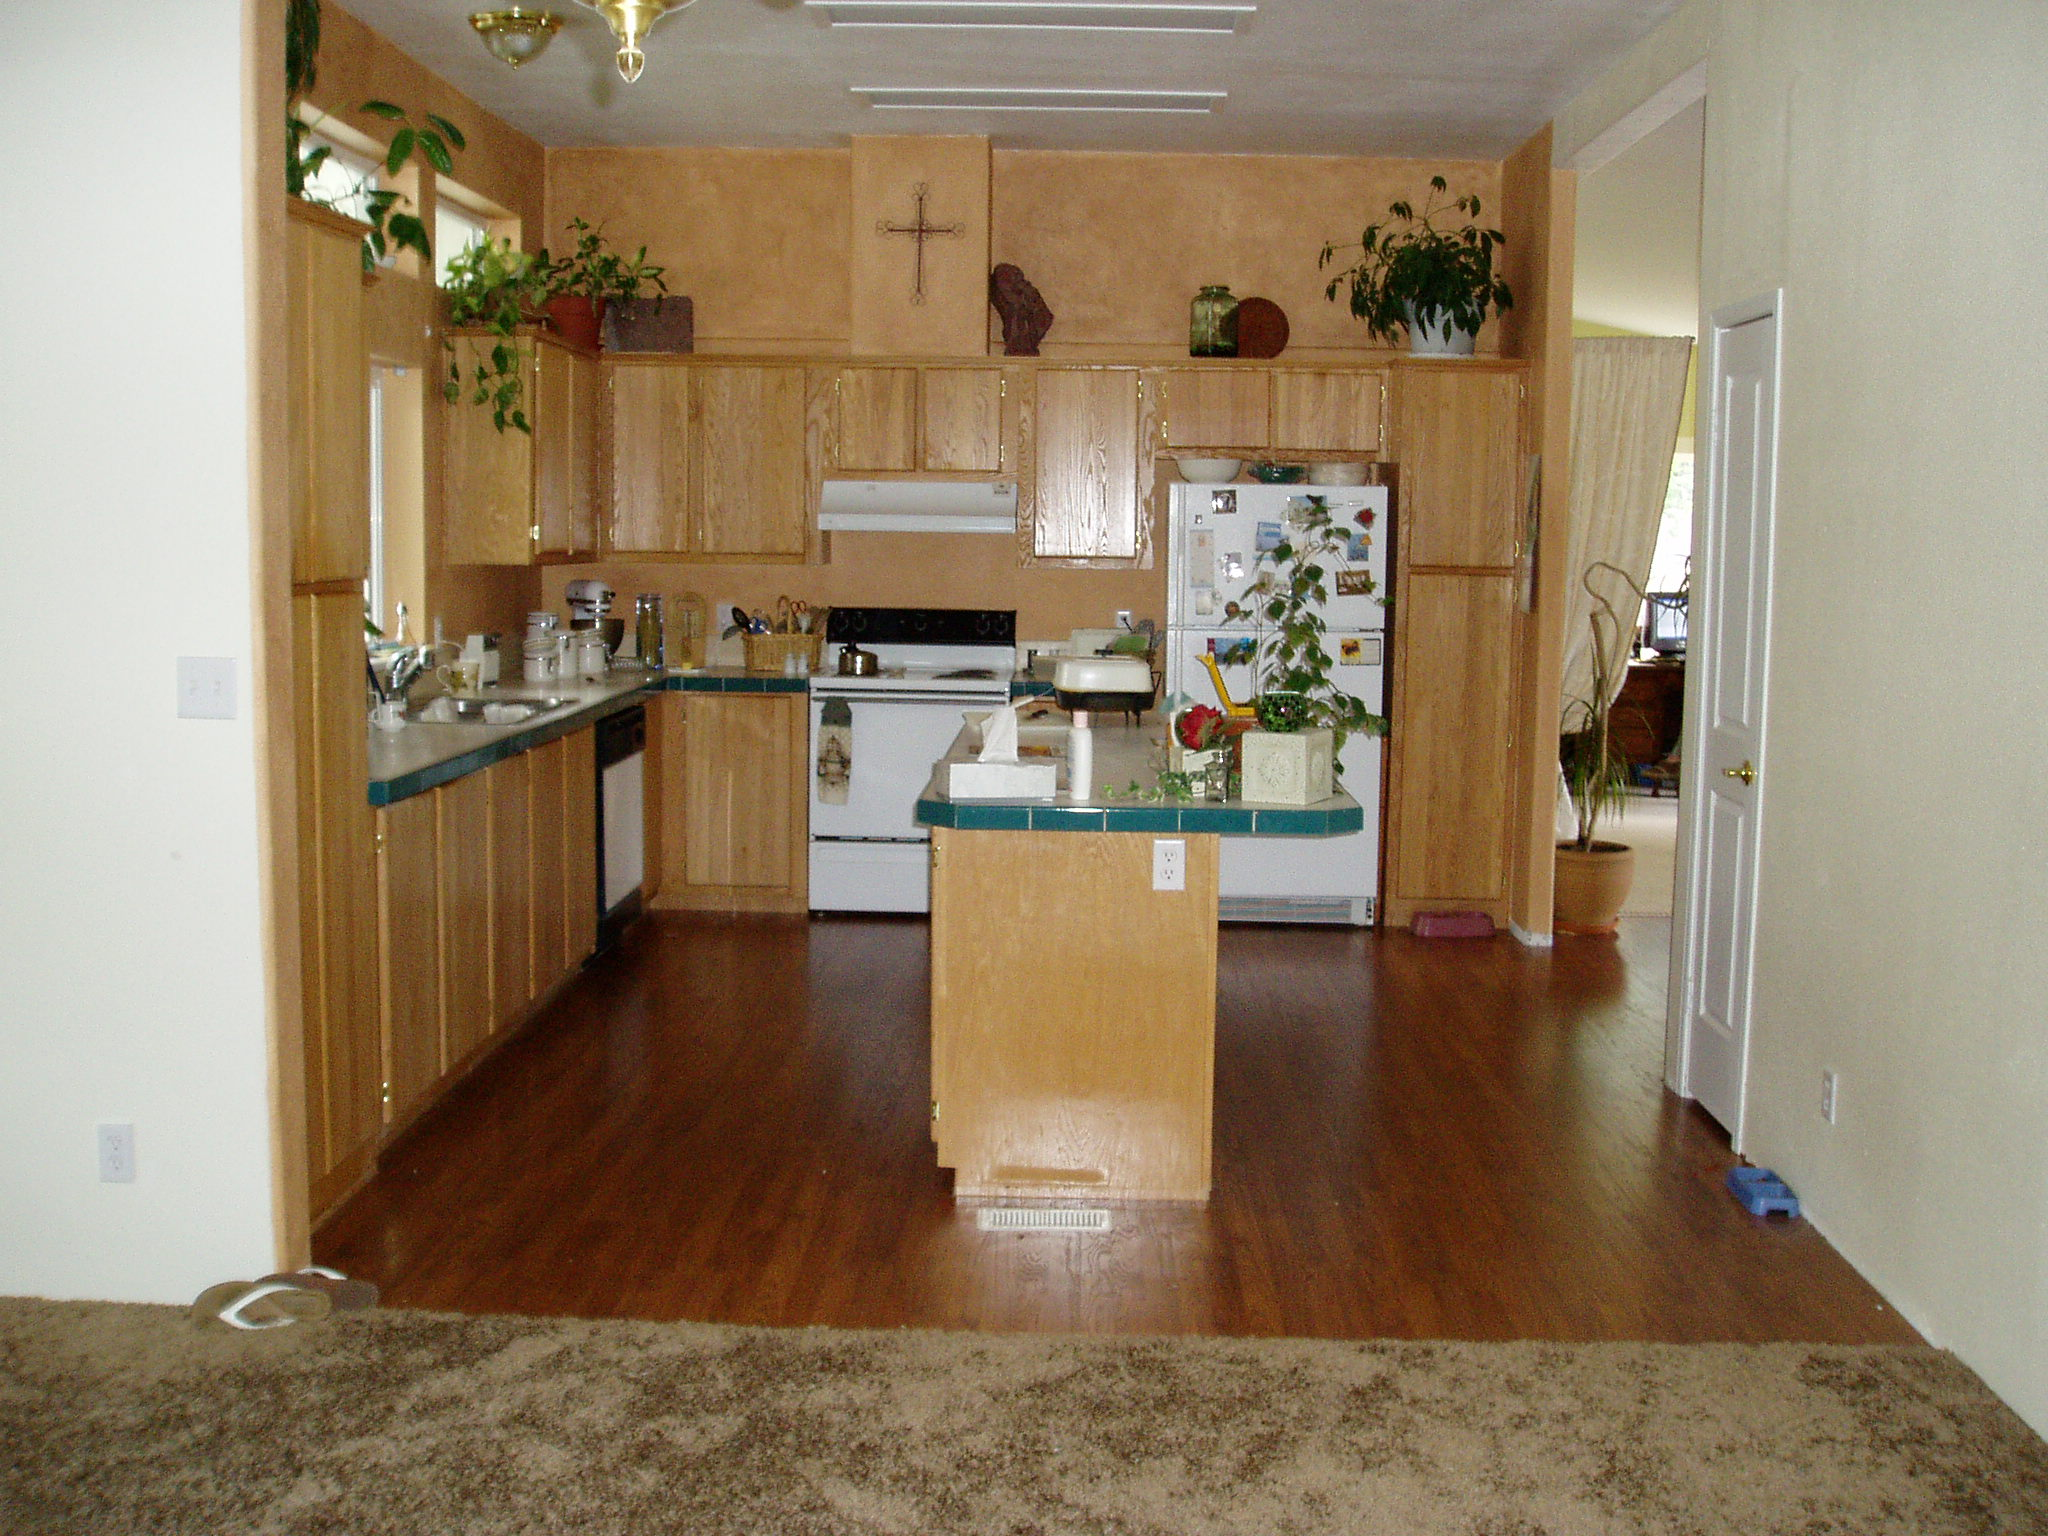 After the flooring and paint in 2004